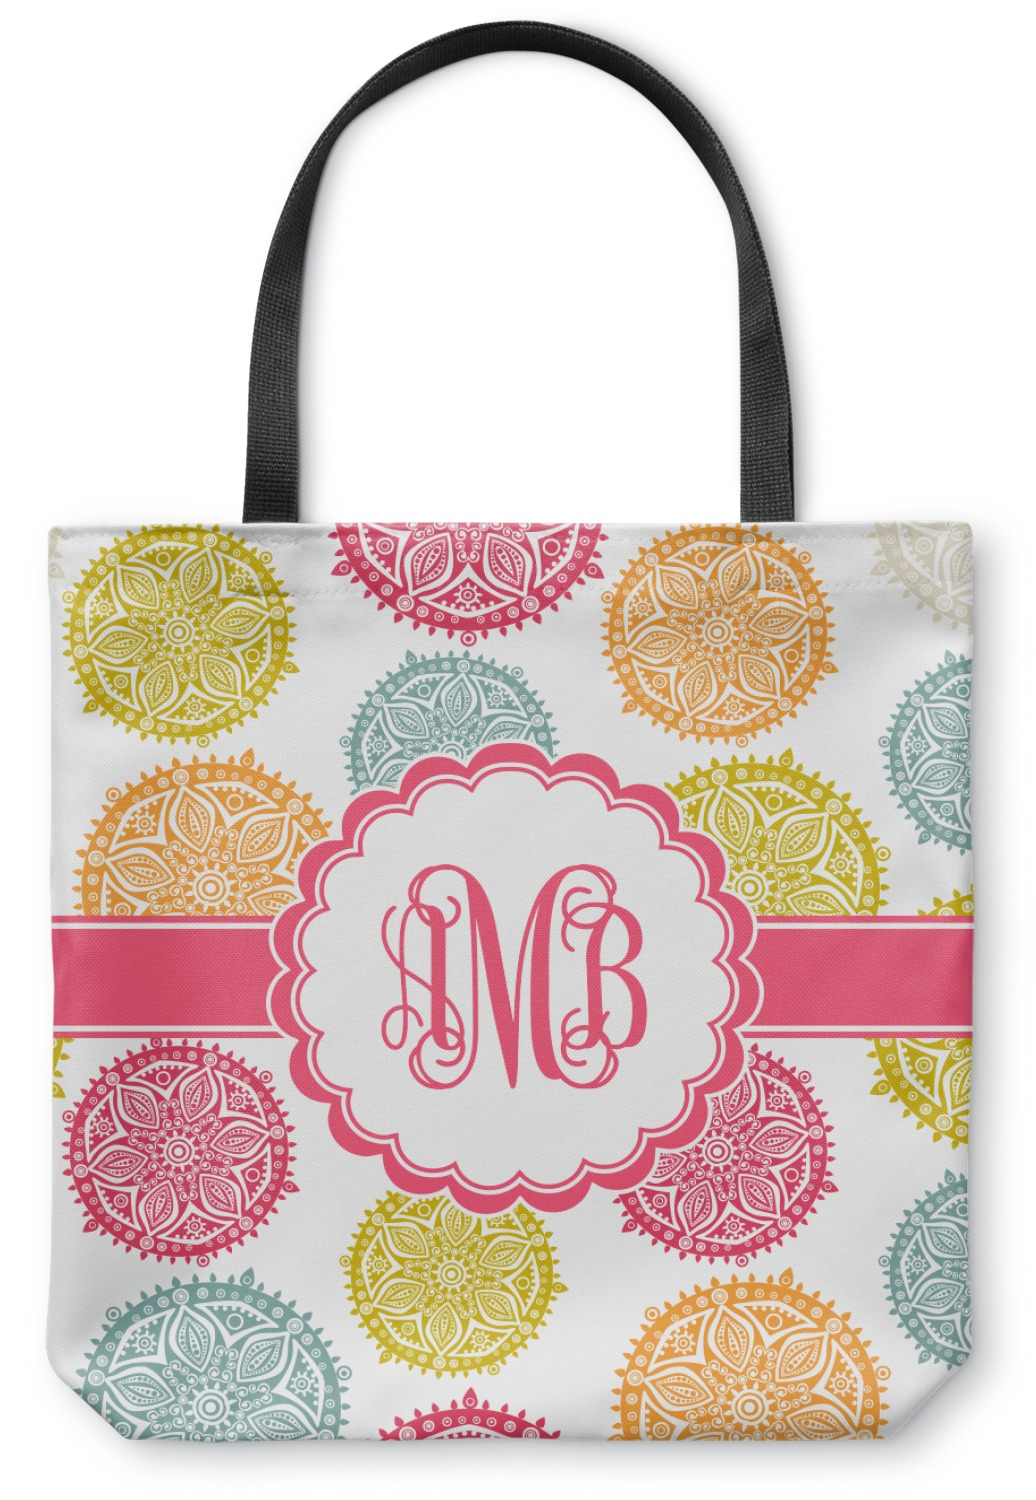 Doily Pattern Canvas Tote Bag Small 13 Quot X13